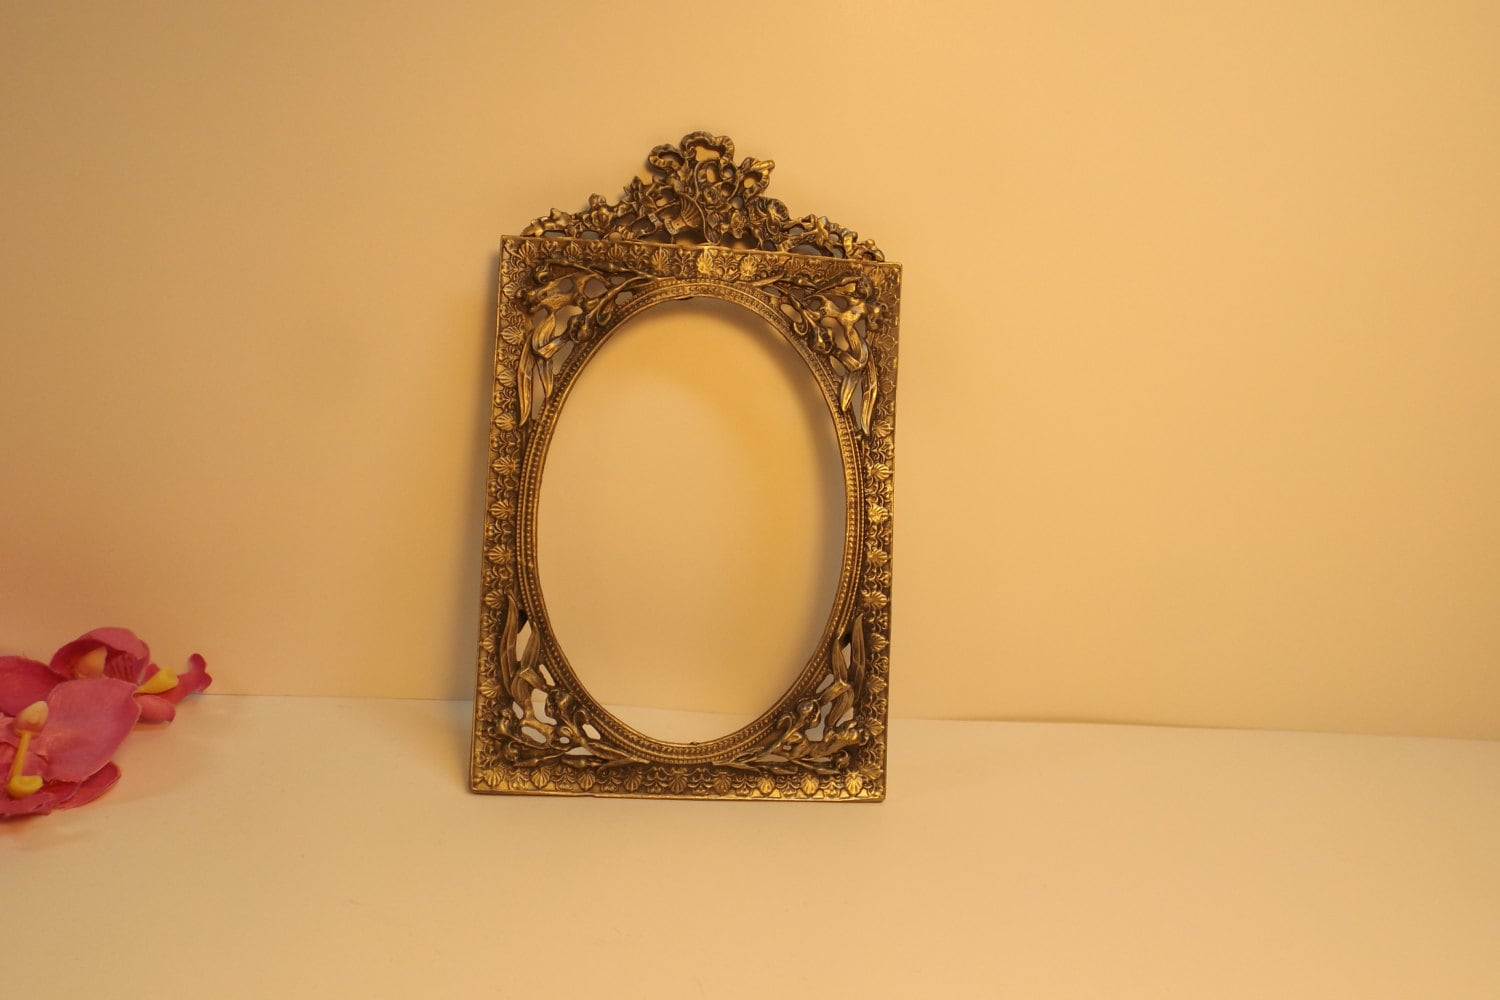 Sale Antique ornate pewter filigree frame oval picture or mirror ...